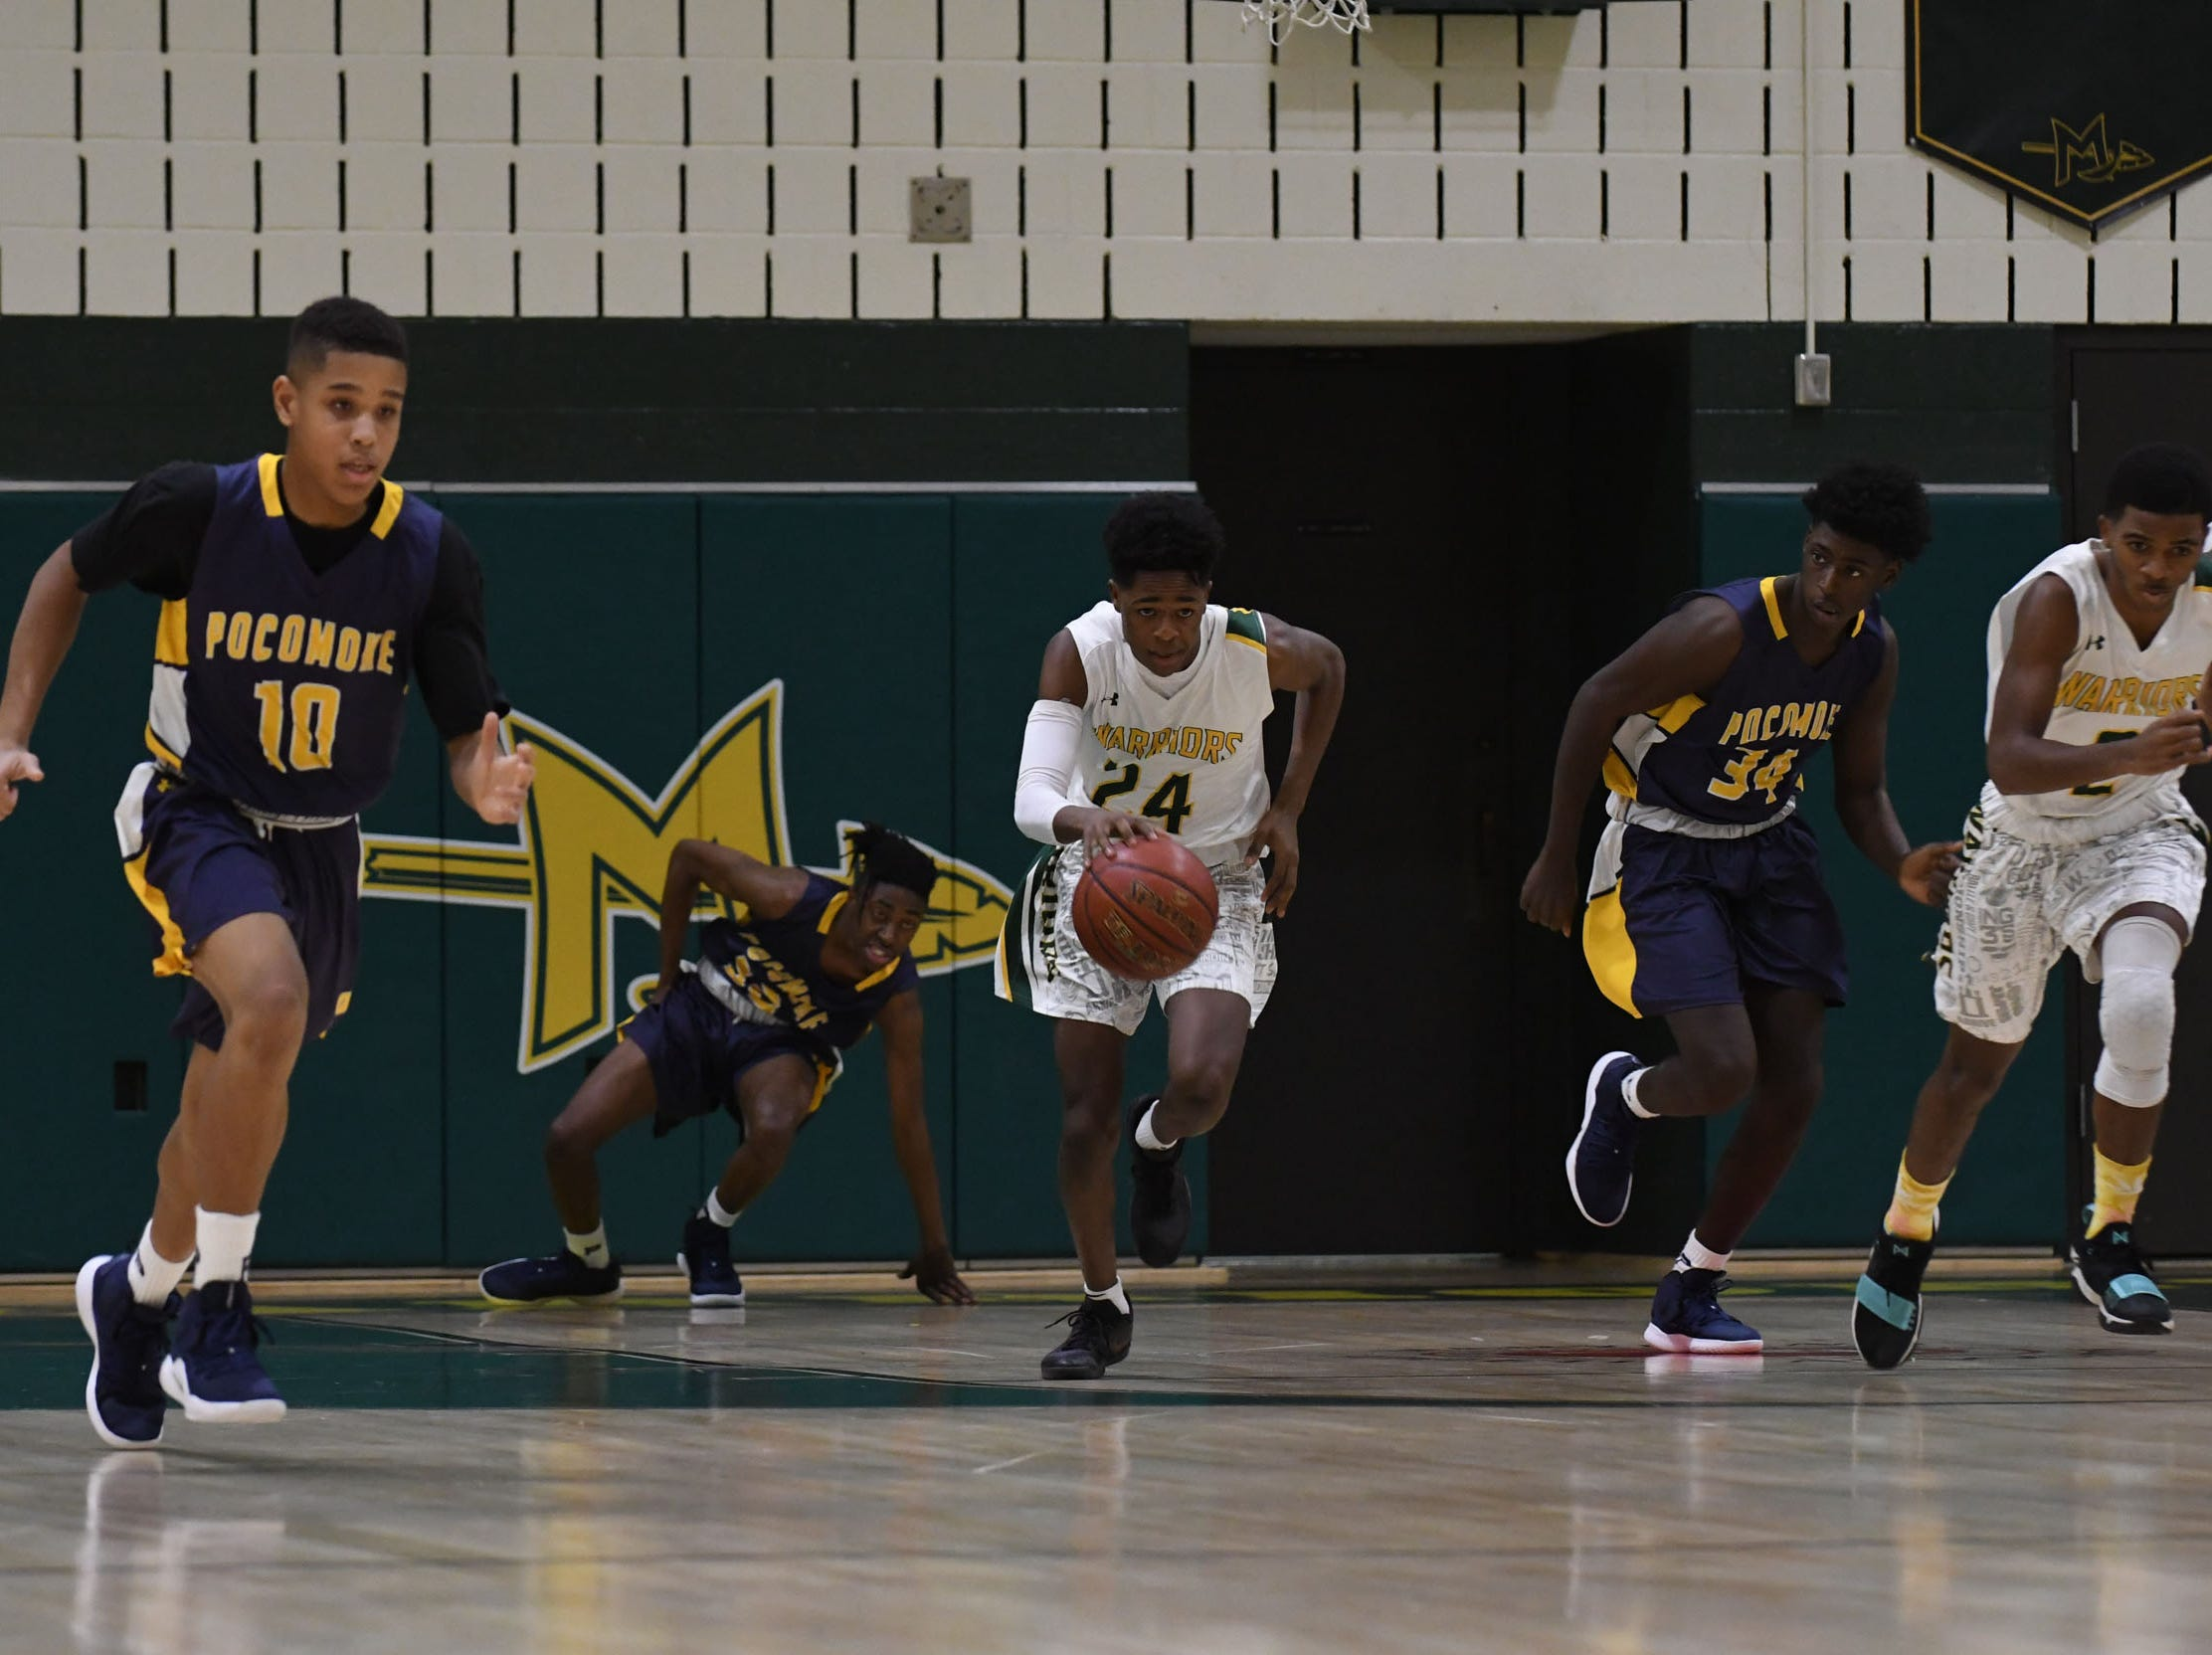 Mardela's Sincere Pinkett brings the ball down the court against Pocomoke on Tuesday, Jan 8, 2019.